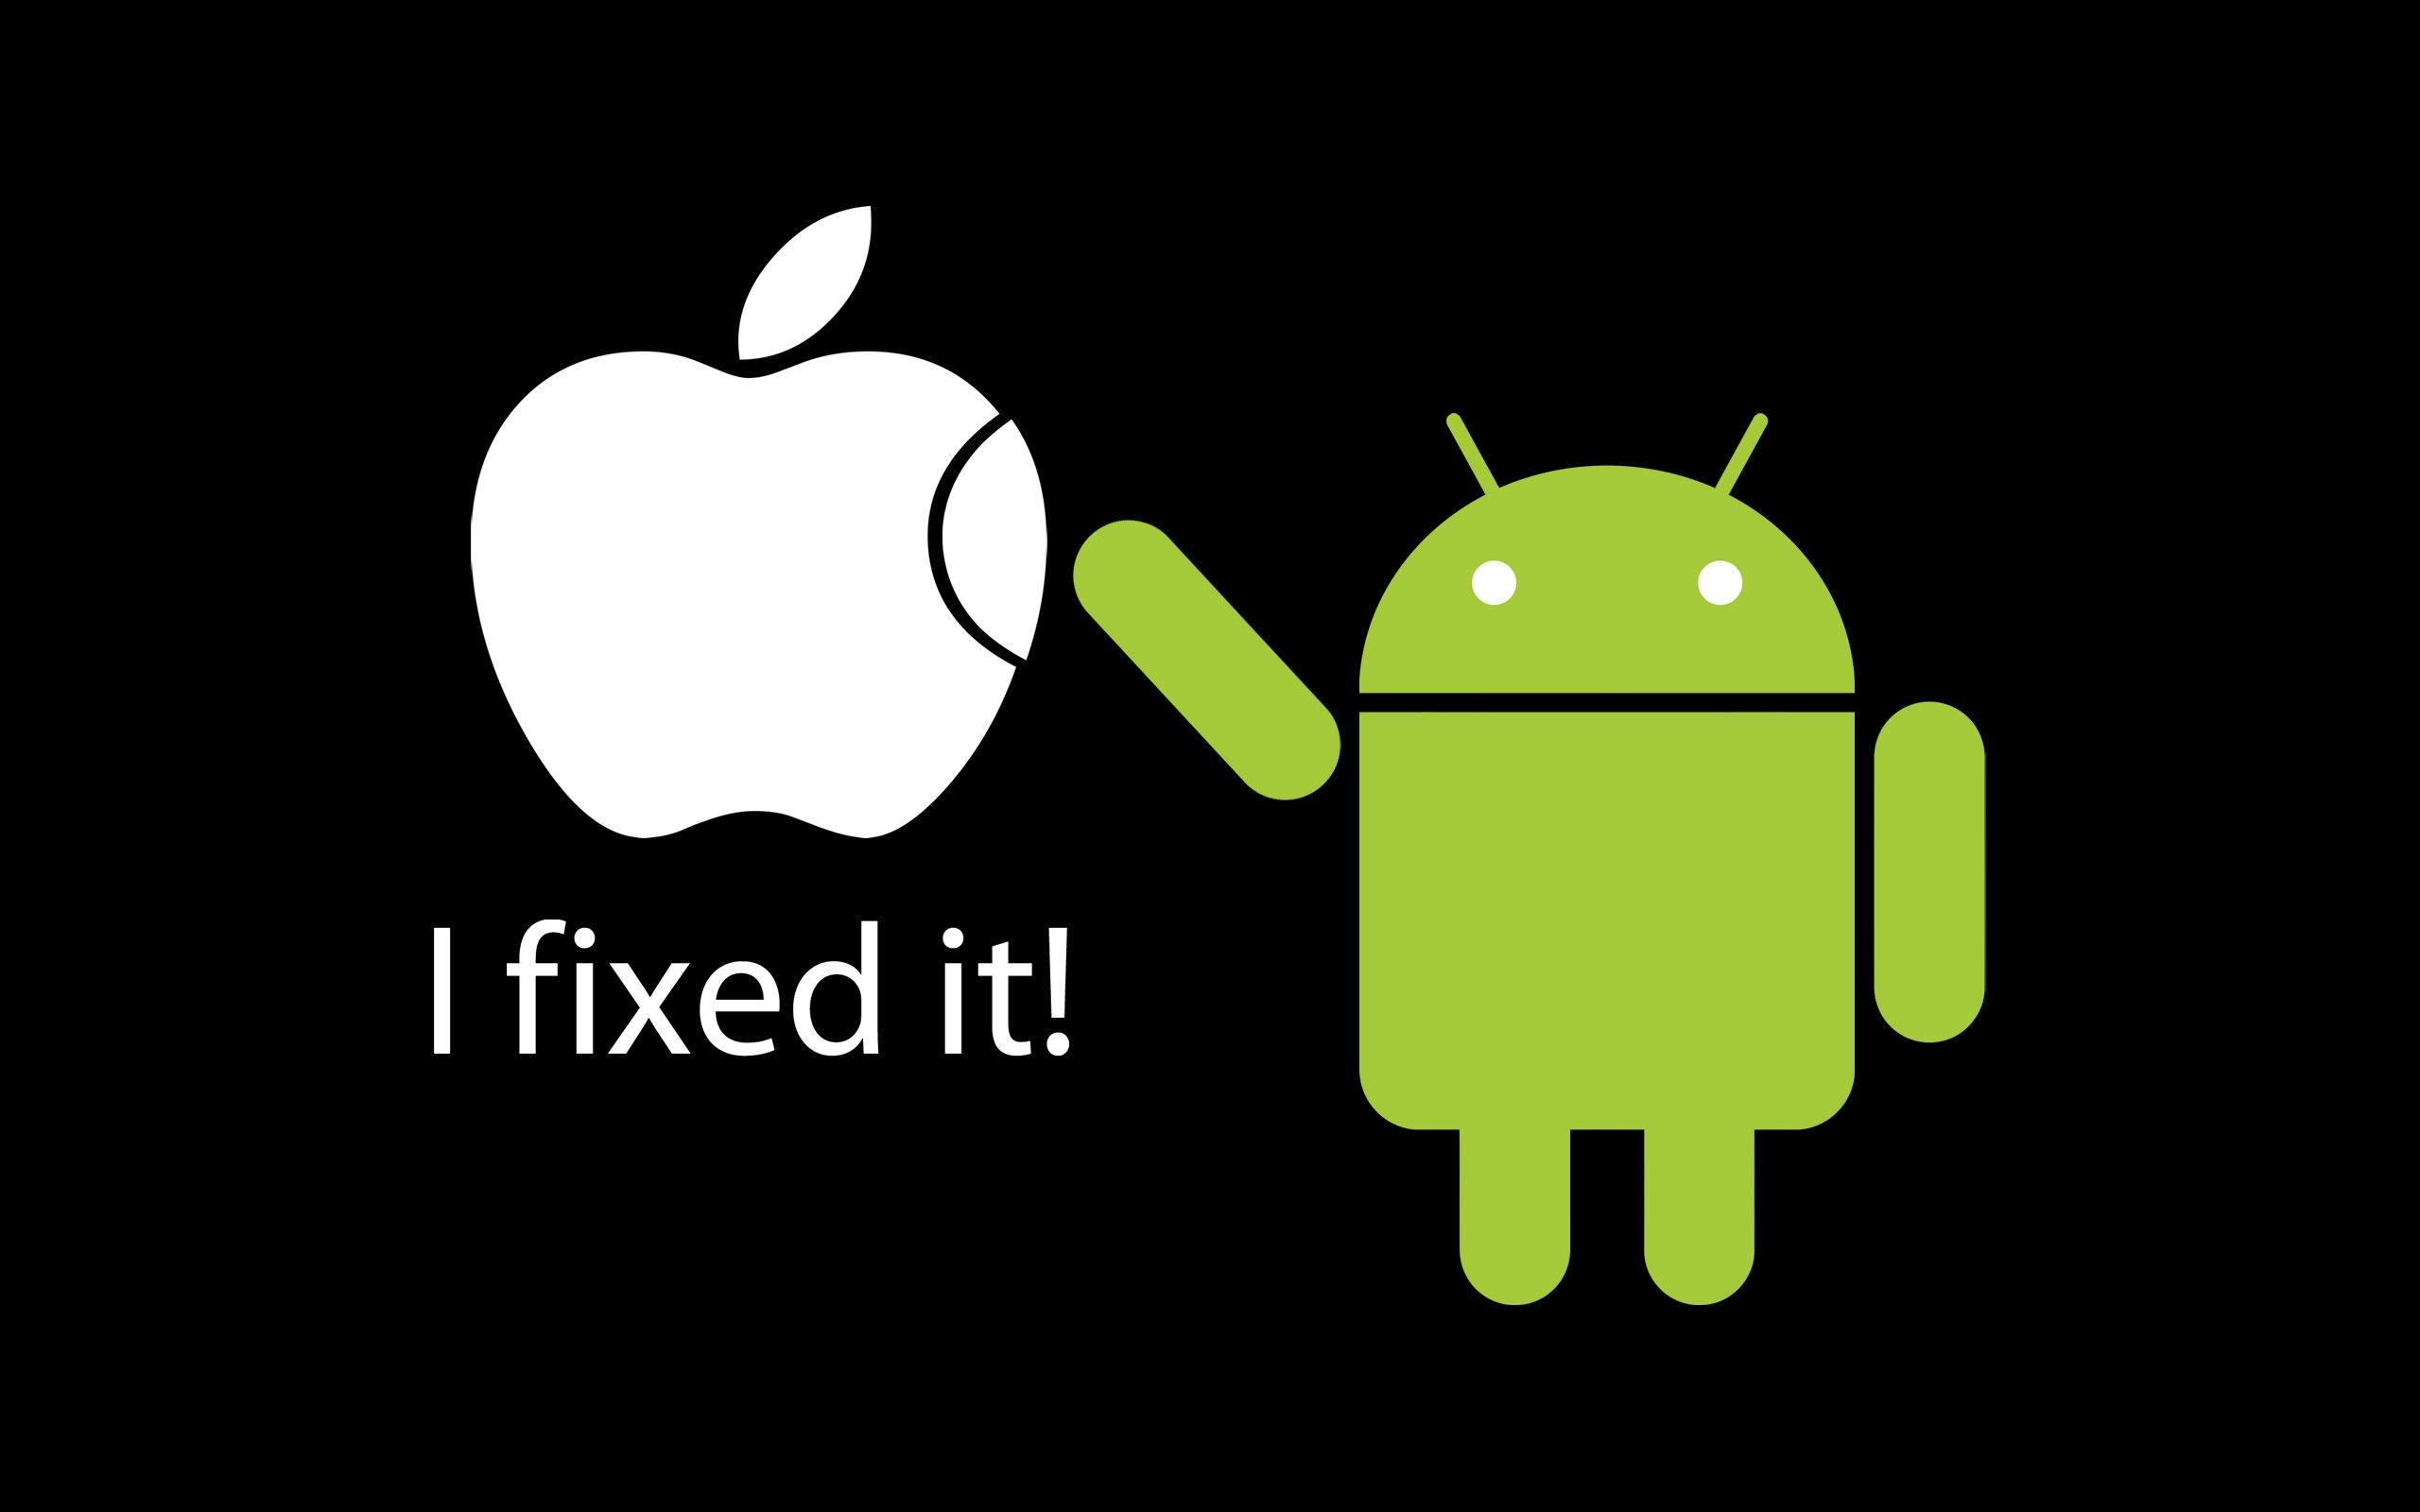 Acura Vs Lexus >> Apple vs Android - I fixed it - Funny wallpaper